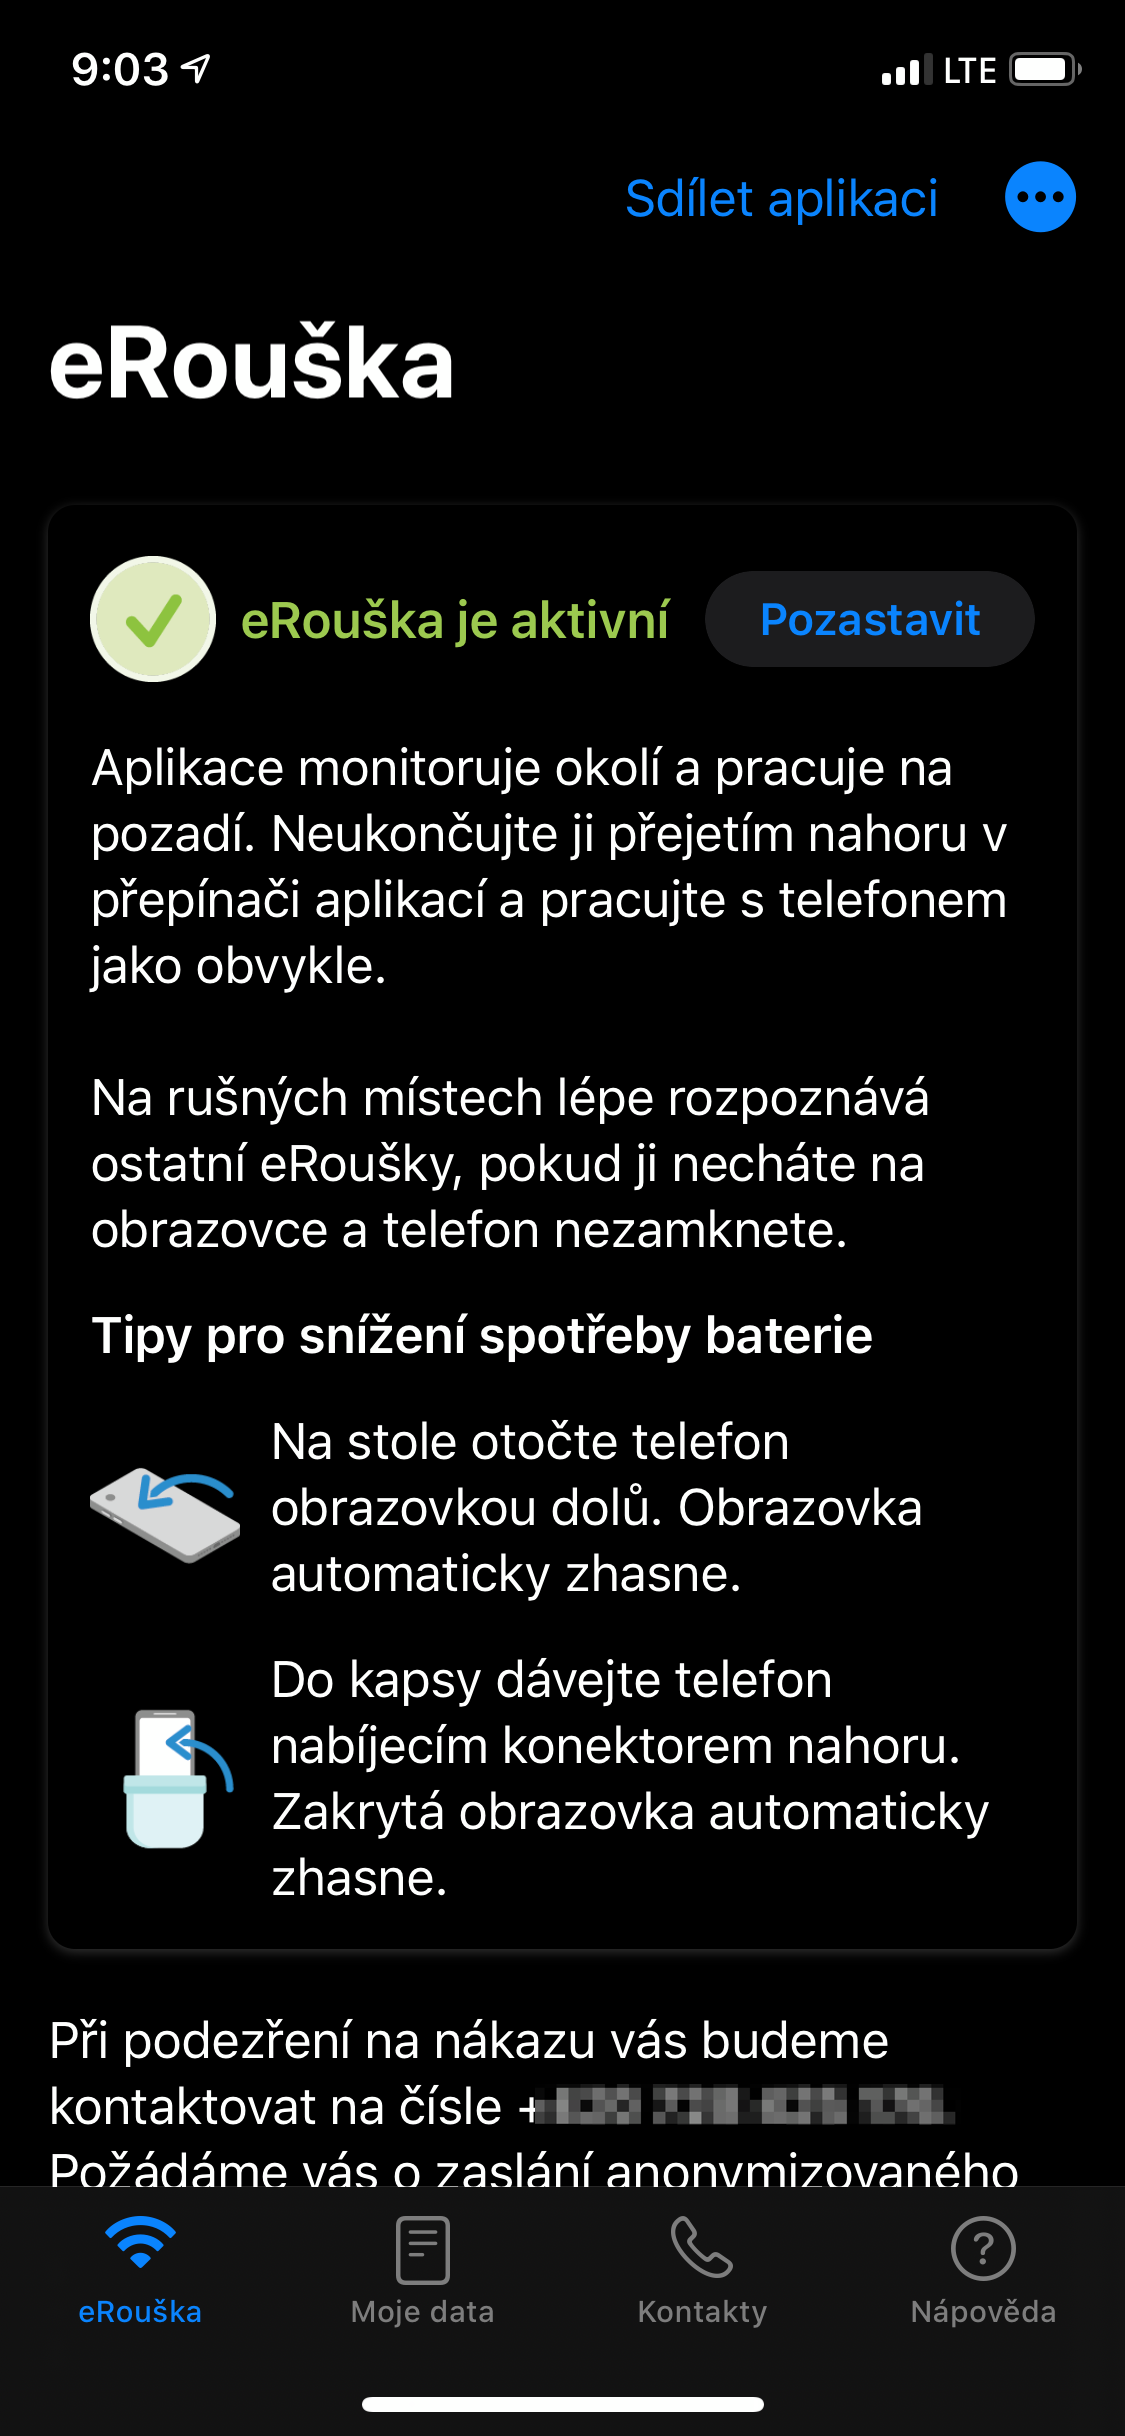 We found out why eRouska does not yet support Apple39s - Even a month after the release, eRouška is almost useless on the iPhone